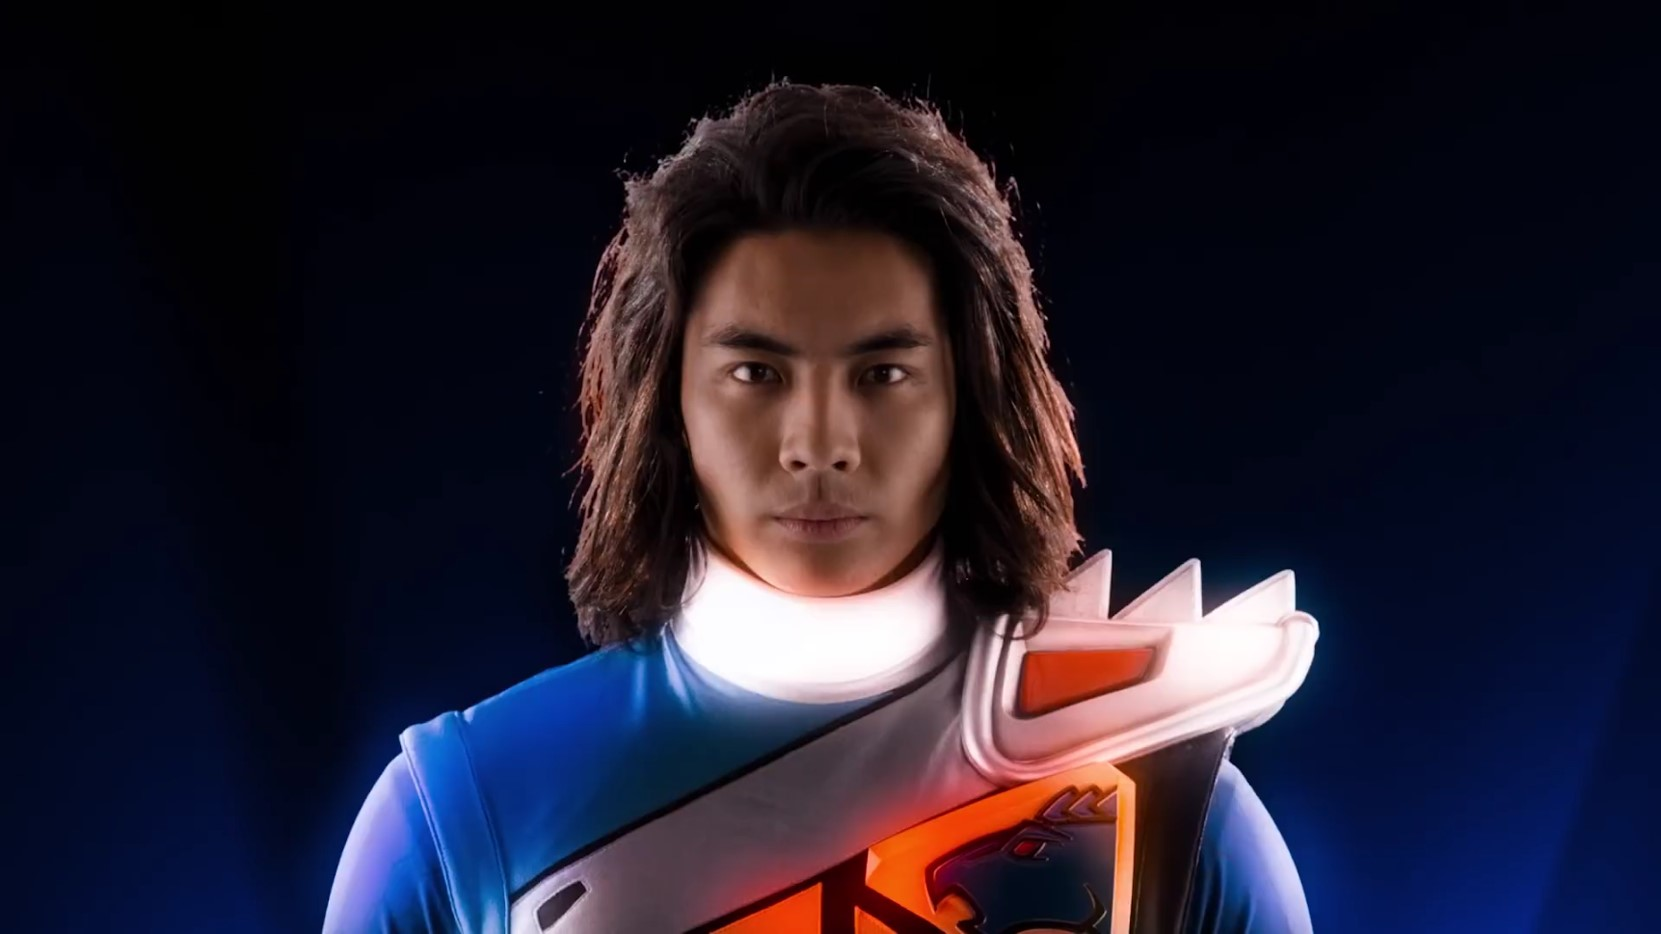 File:Blue Dino Charge Ranger Morph 2.jpeg